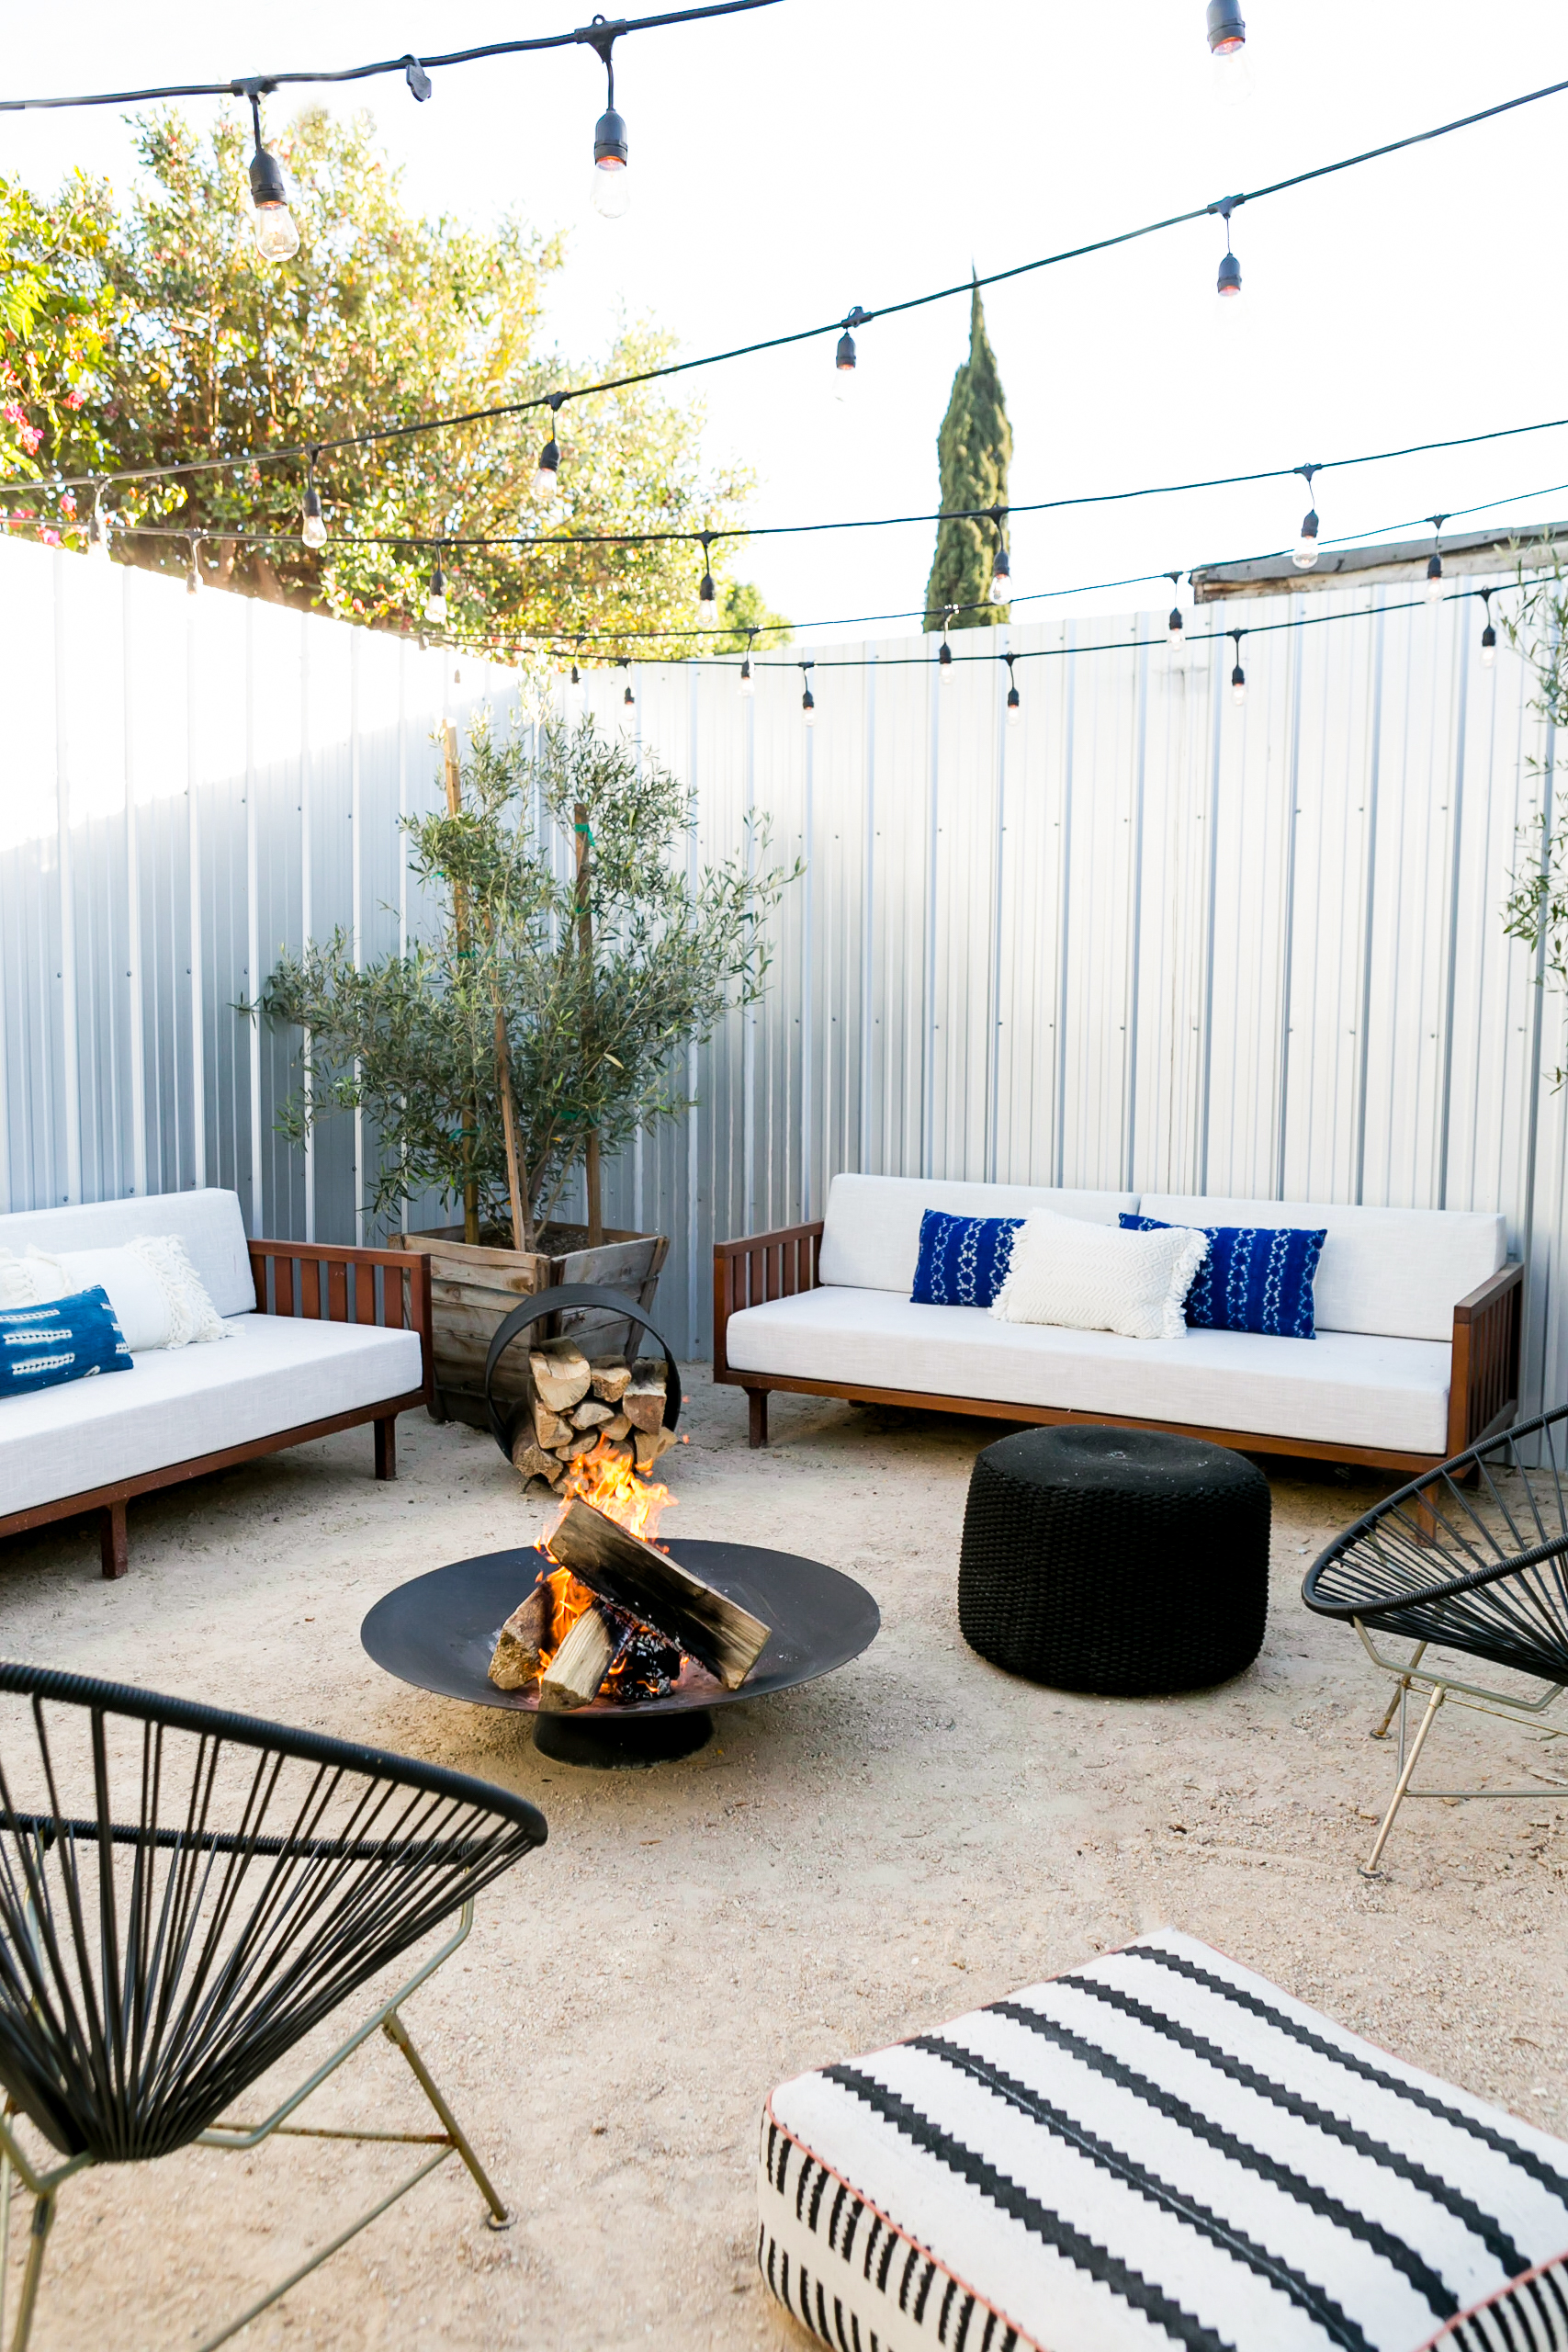 The Outdoor Space - Living in Southern California, we had to take advantage of the outdoor space. One of the best hacks I learned from a friend was using the corrugated metal fencing -- not only is it cheap and durable but it looks amazing! Further we wanted to add some green as we don't have true grass and olive trees are a great way to bring shade and greenery with very little upkeep.